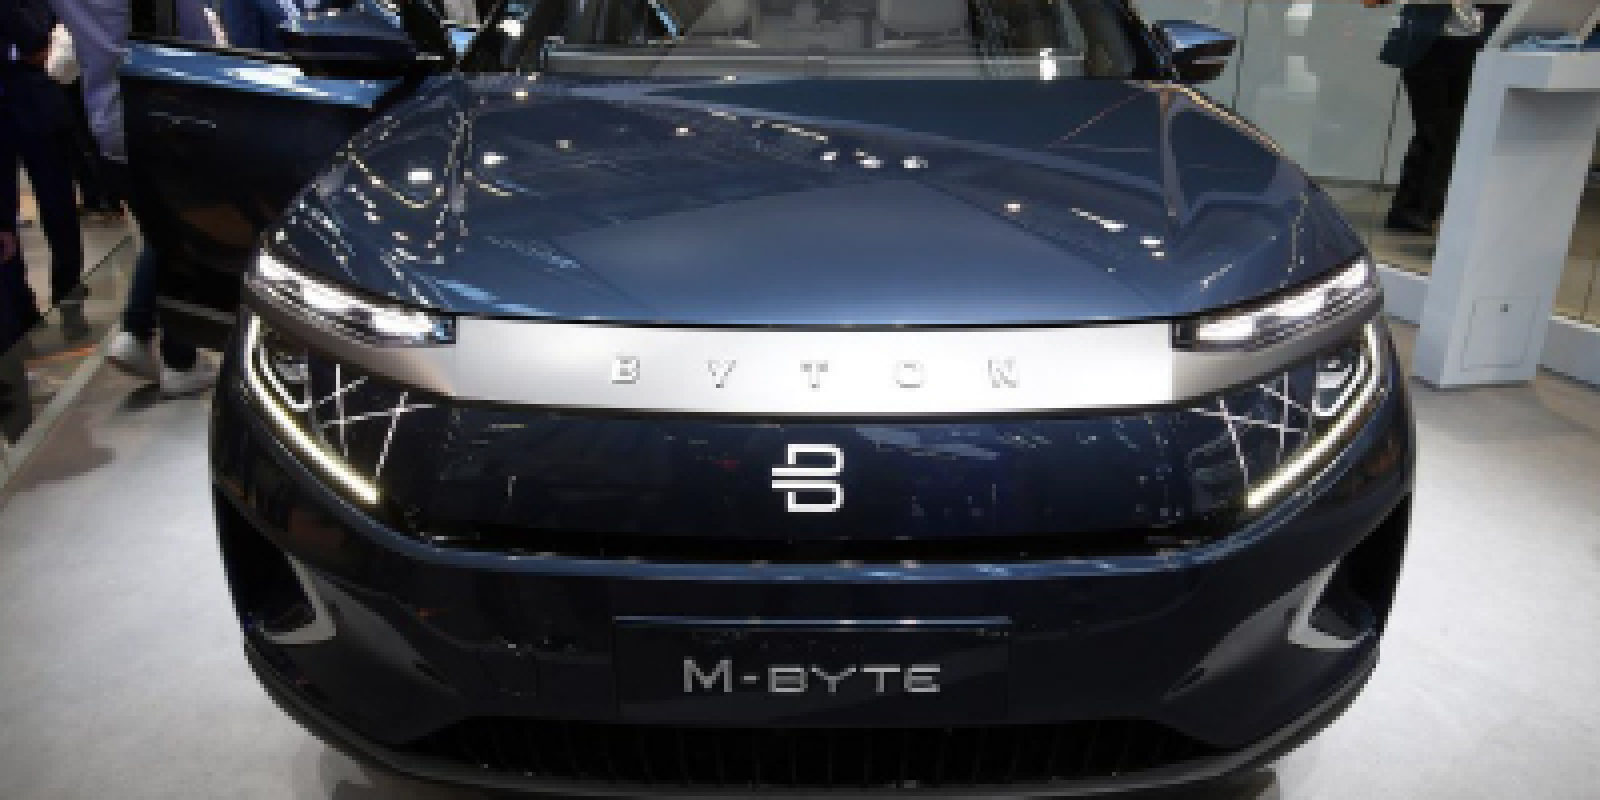 New 2020 Byton M-Byte electric car confirmed for UK